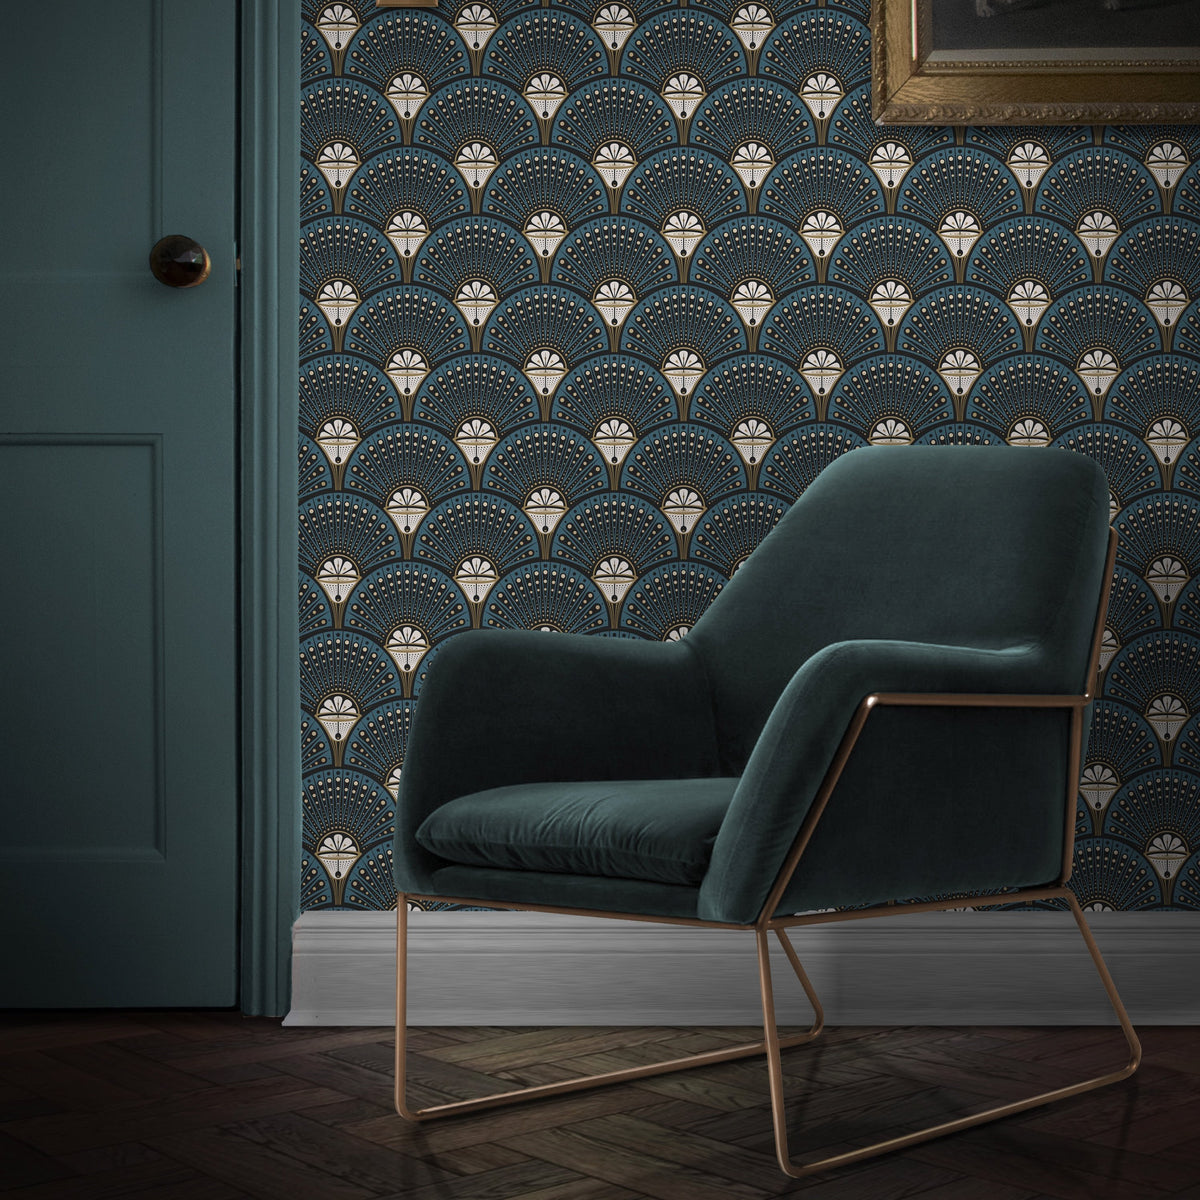 The Joyful Home Company WALLPAPER Deco Martini Teal Wallpaper by Divine Savages